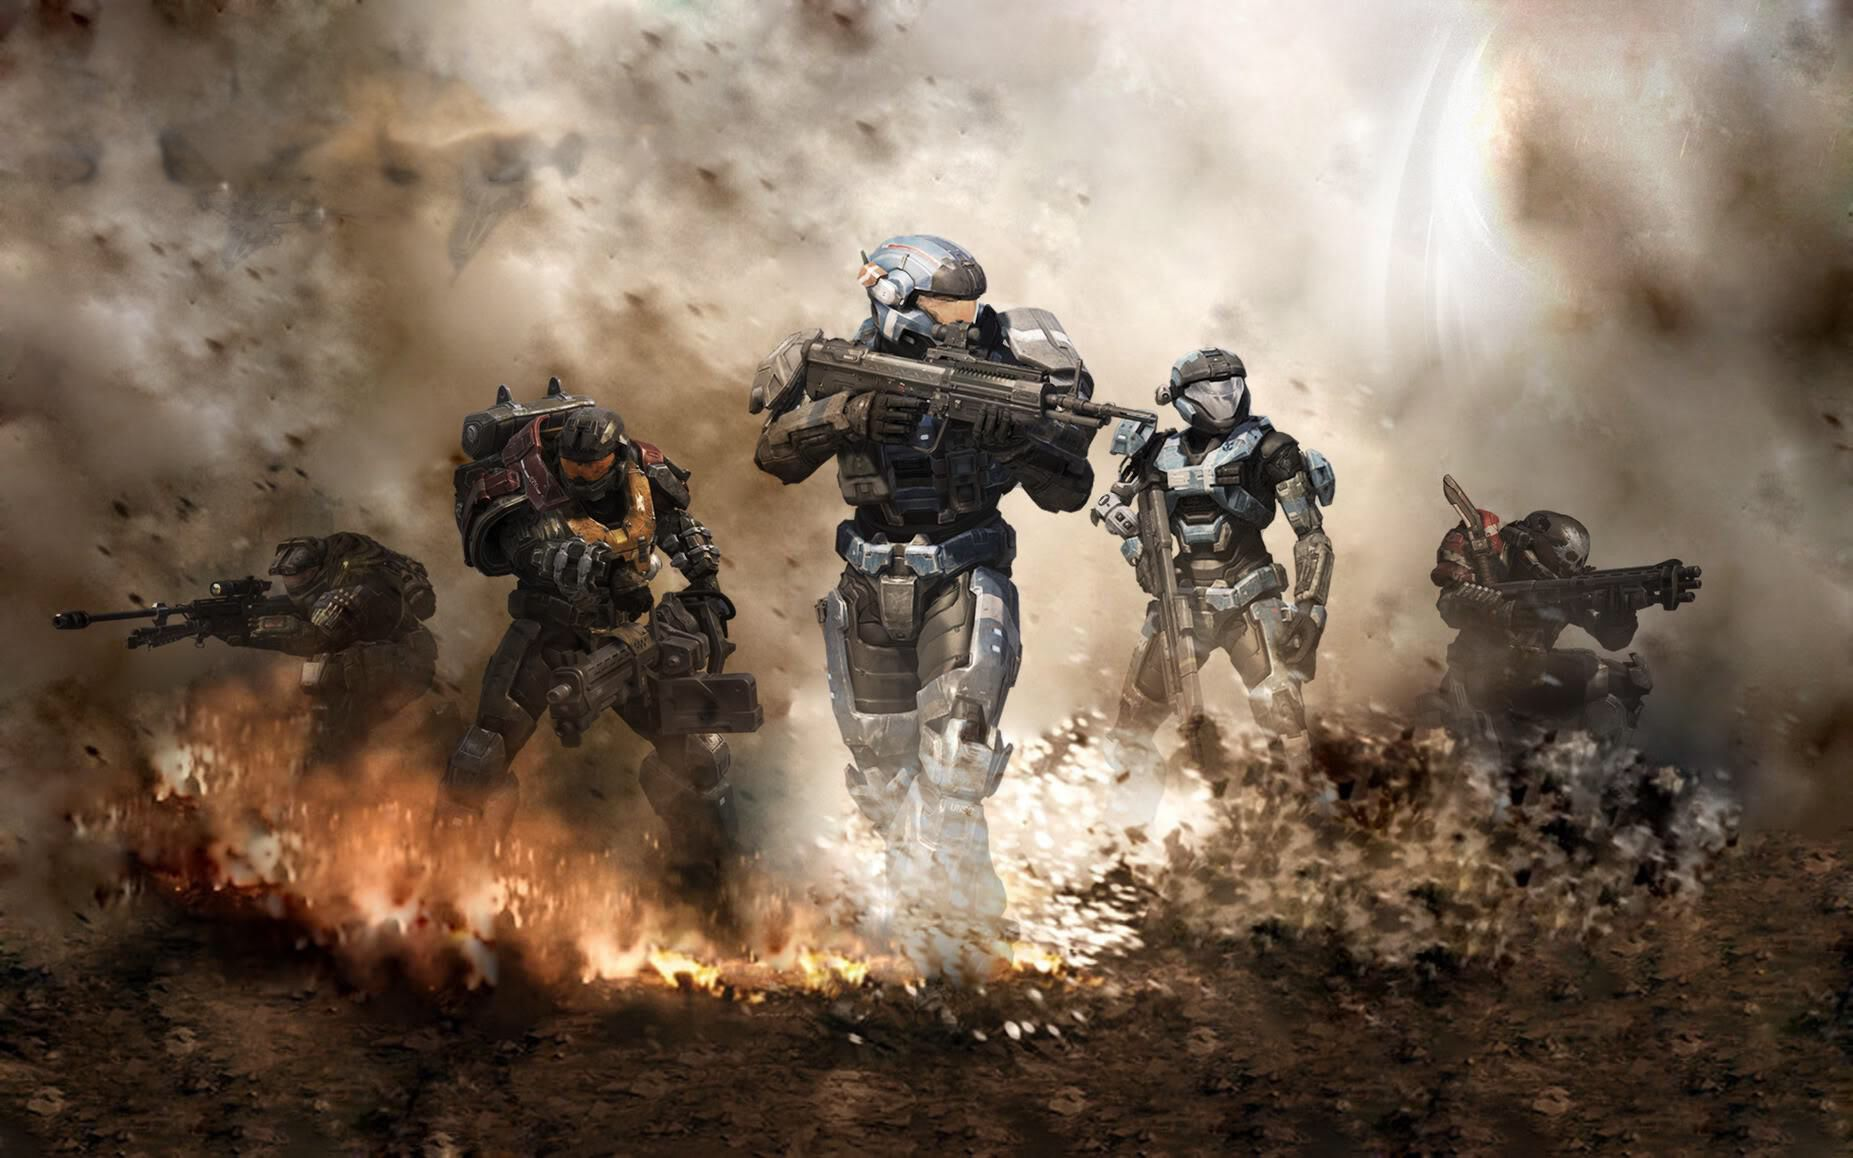 Share An Halo Game Wallpaper Download Game Wallpapers Http Itunes Apple Com App Id737393970 Halo Reach Halo Game Custom Halo